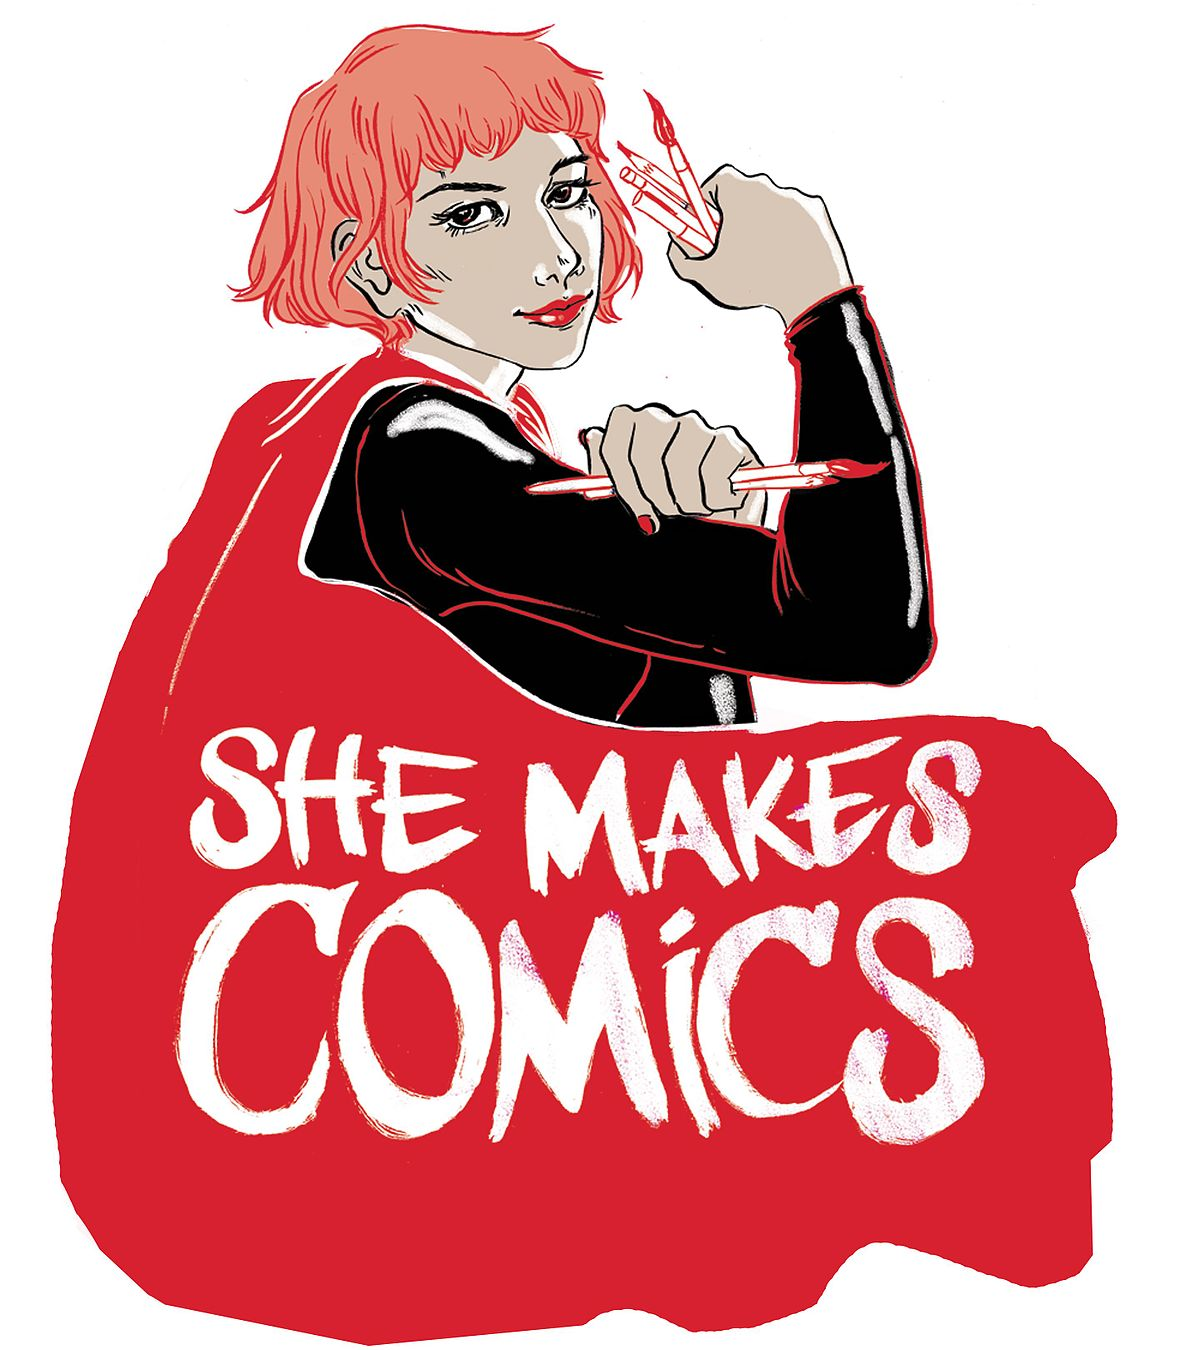 She Makes Comics - The Untold Story of Women in ComicsOften forgotten or ignored, women creators have a rich history of achievement in comic books, a business and culture where some gender biases persist.Available Now on NETFLIX